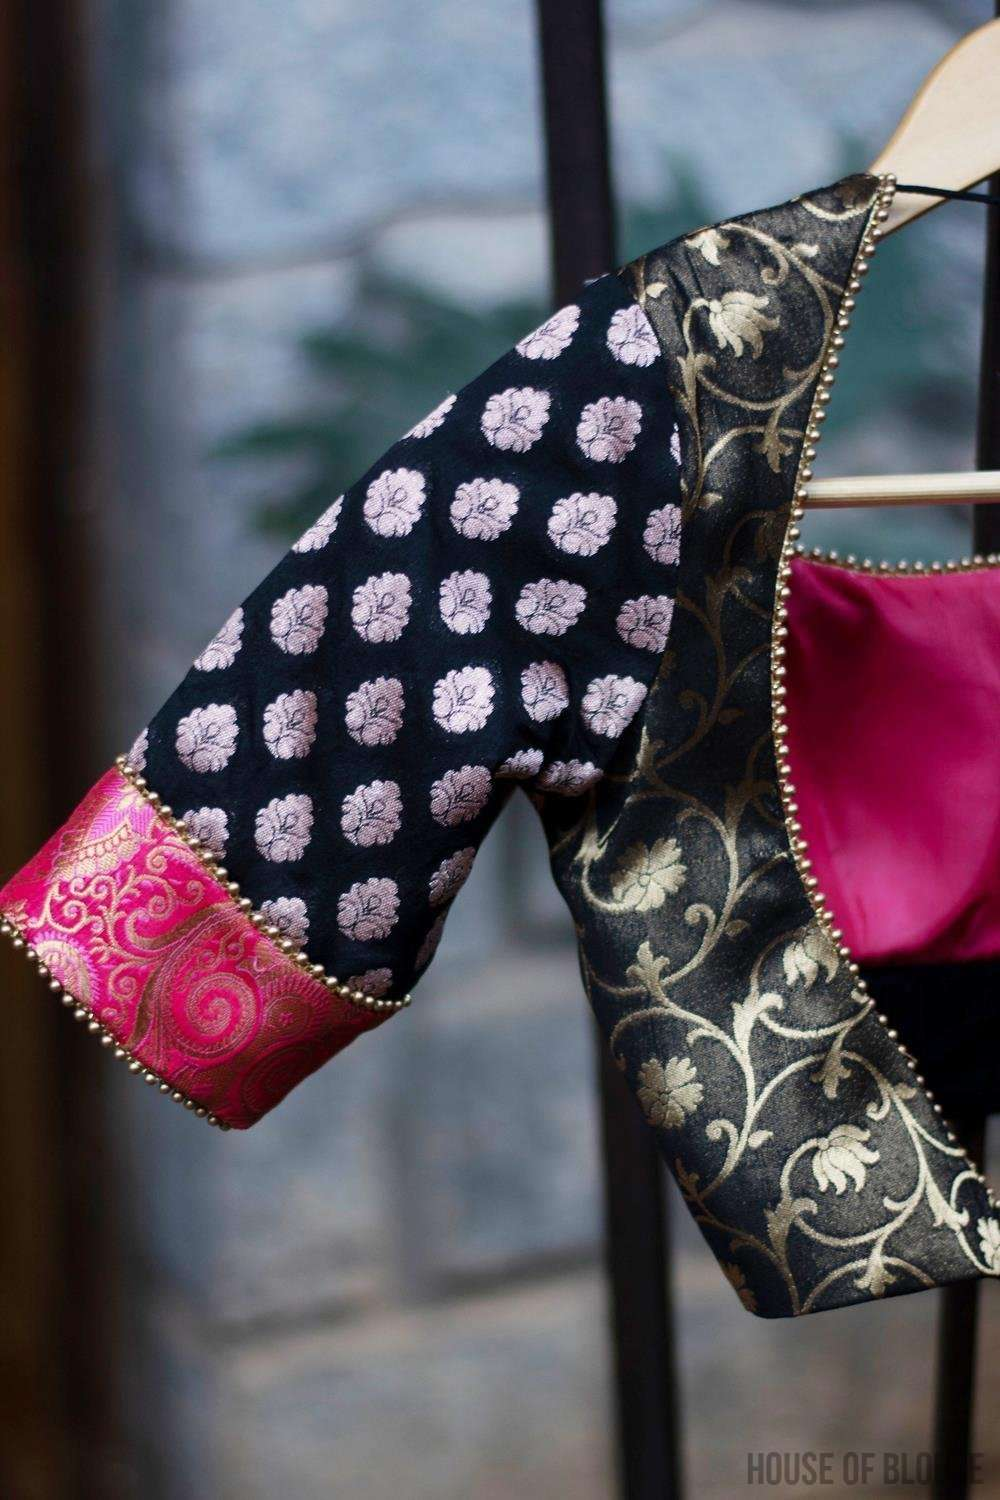 Patchwork blouse made in black and pink brocade with gold bead edging.